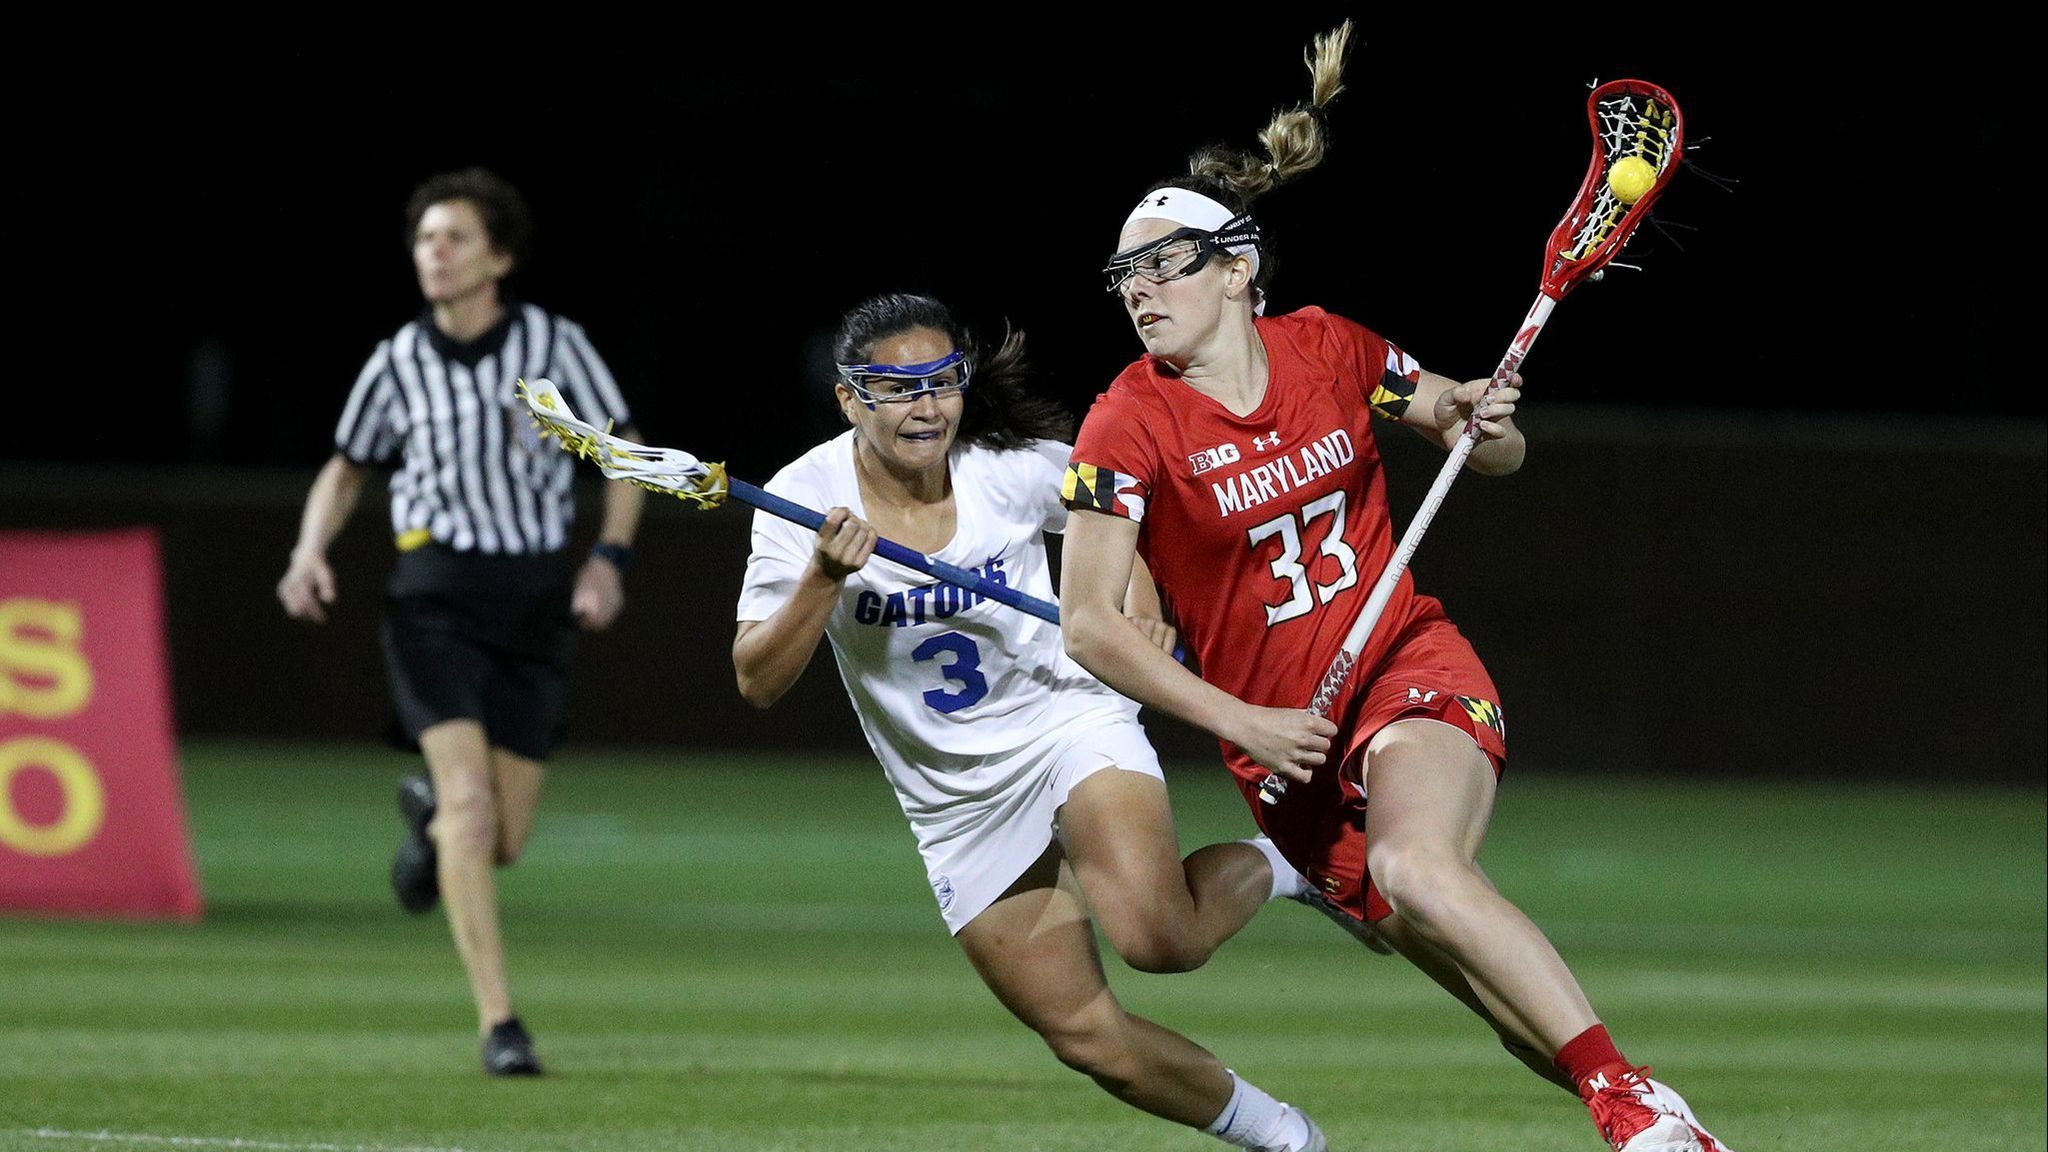 Newcomers Erica Evans, Tayler Warehime add to expectations for Maryland, North Carolina women's lacrosse - Baltimore Sun